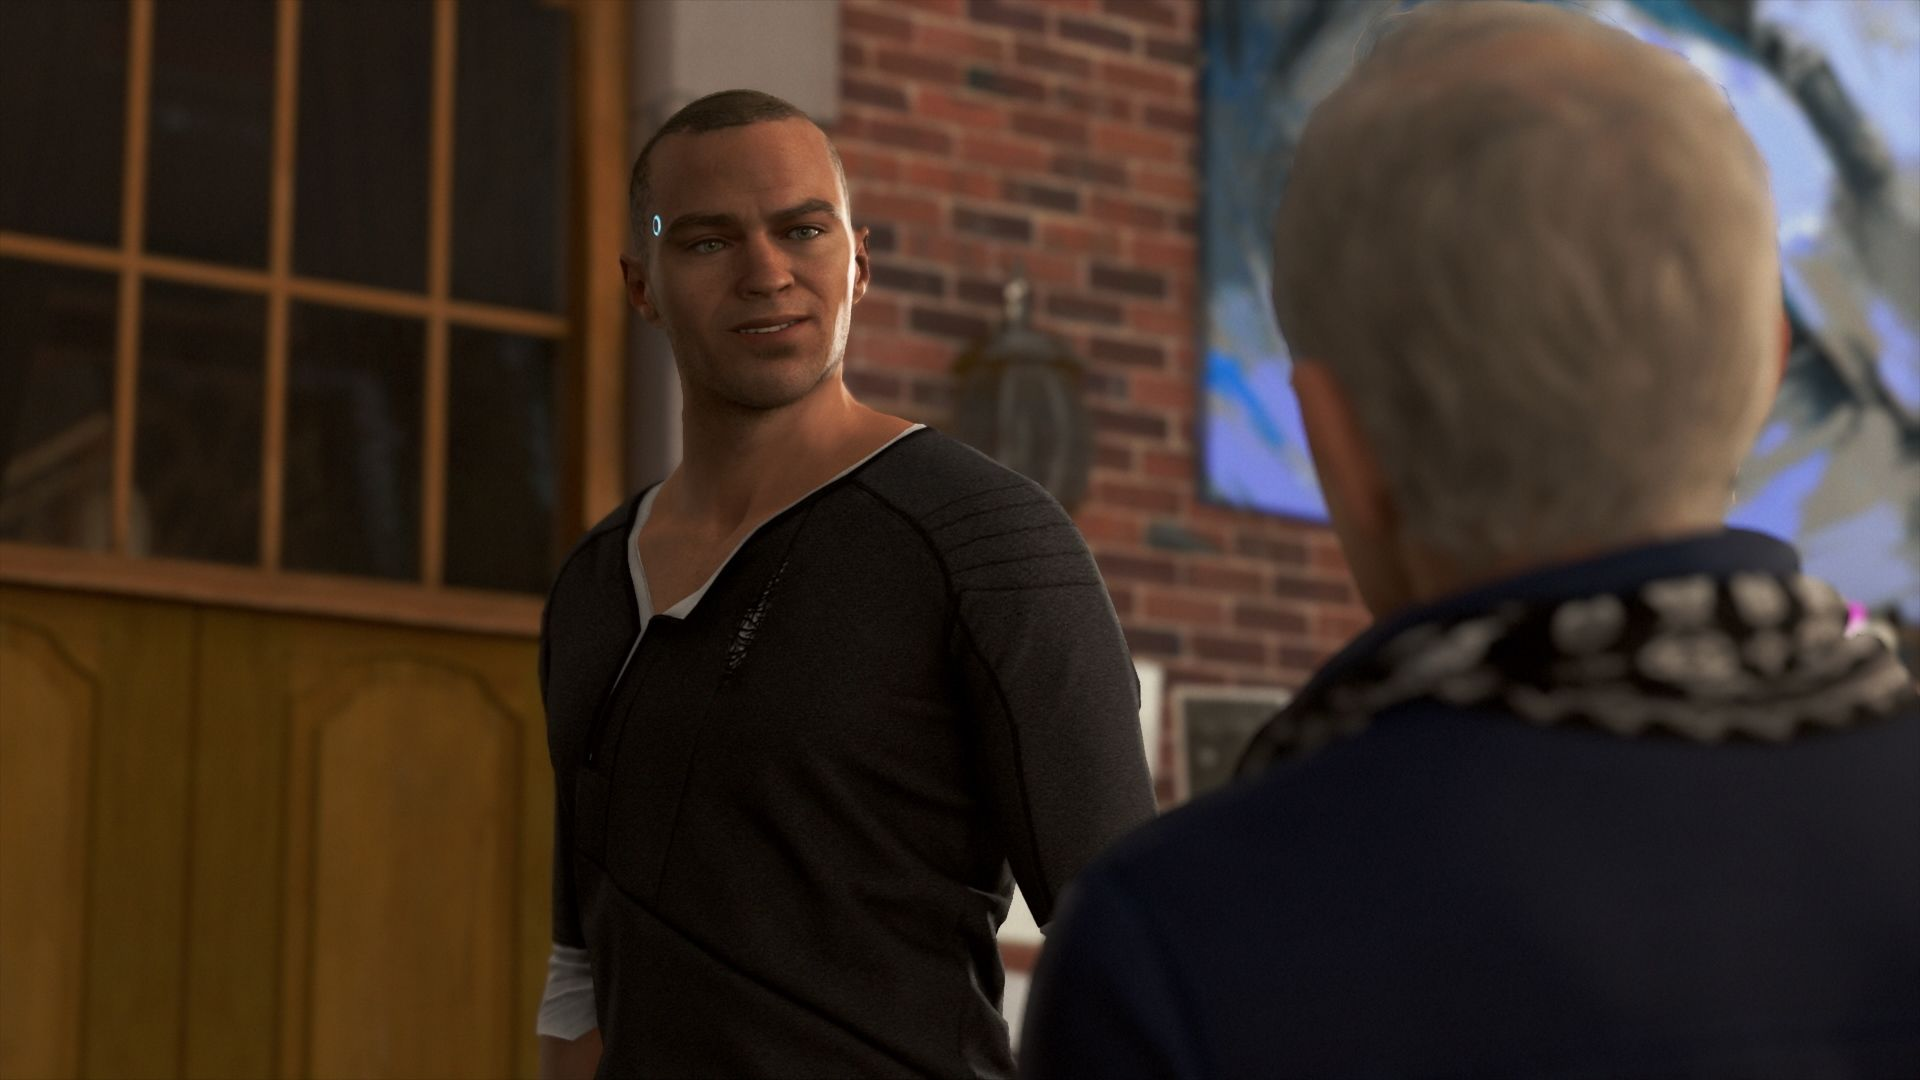 Courtesy of Sony Interactive Entertainment LLC and Quantic Dream